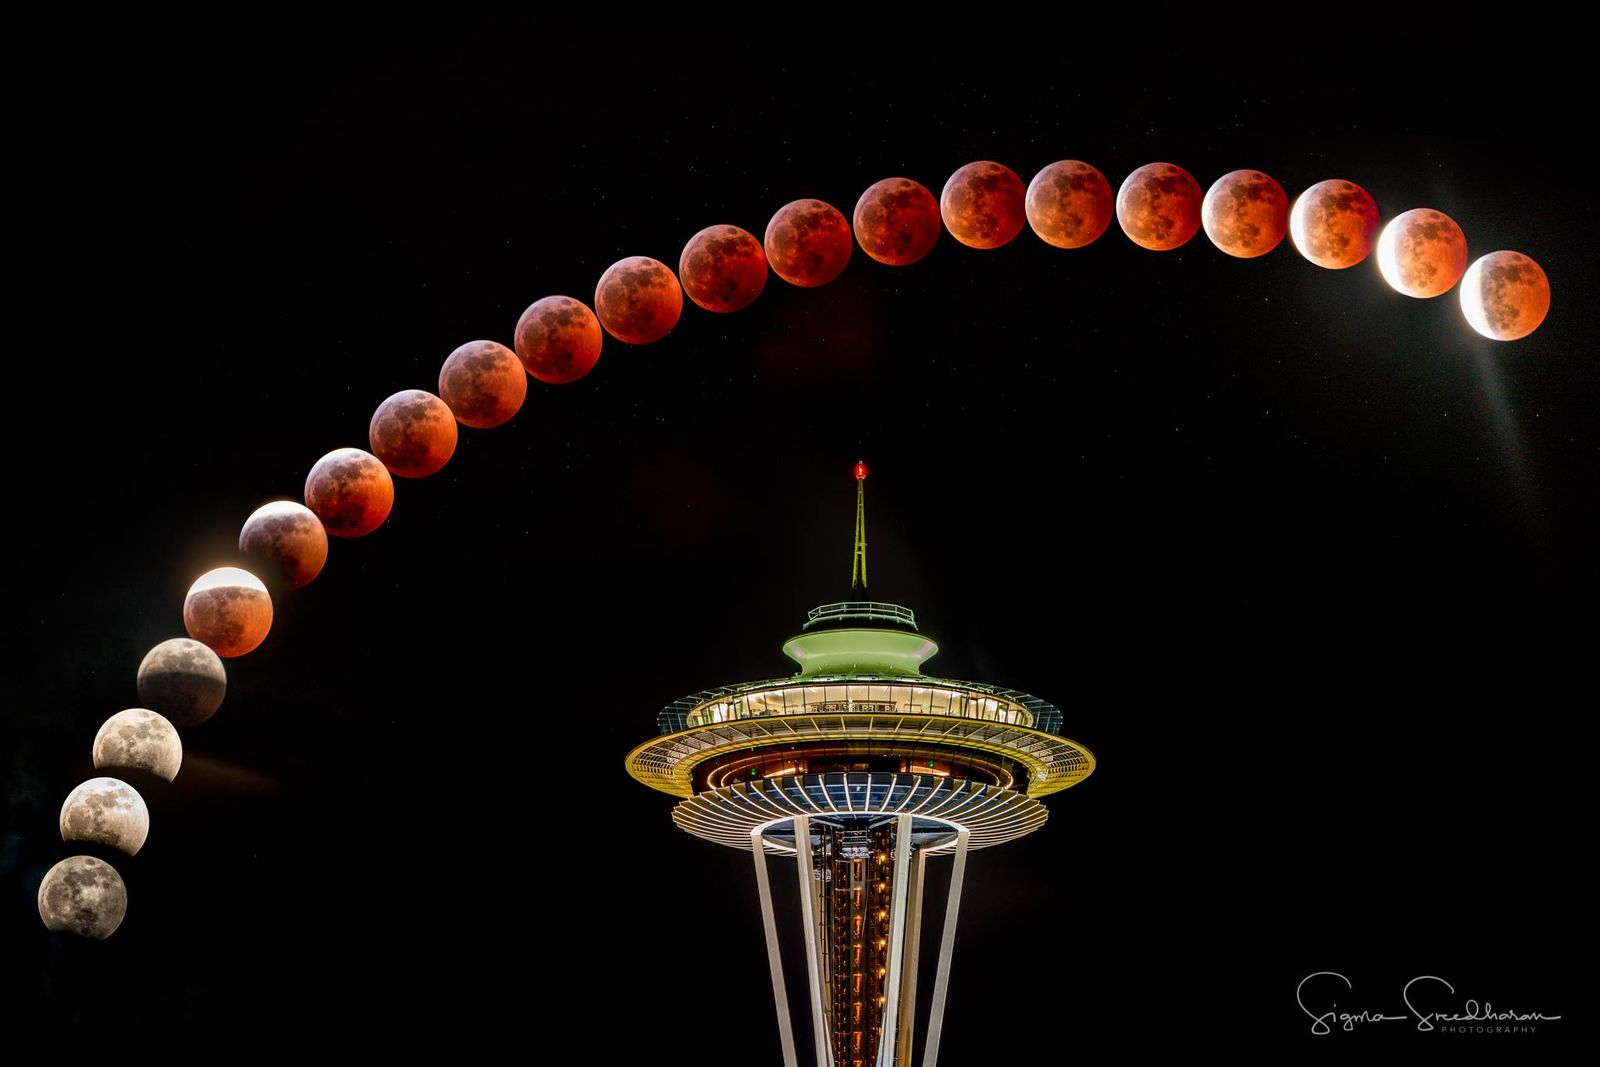 Caption from photographer Sigma Sreedharan Photography:{ }Here's an artistic rendition of last night's Super Blood Wolf Moon Lunar Eclipse. First eclipse pic was from 7:36pm and the last one from 9:59pm.I used Space Needle as the base to add some foreground interest, but as you know the eclipse happened much higher in the sky. Moon's actual trajectory was also hard to map out in a horizontal frame, so I chose an arc instead.